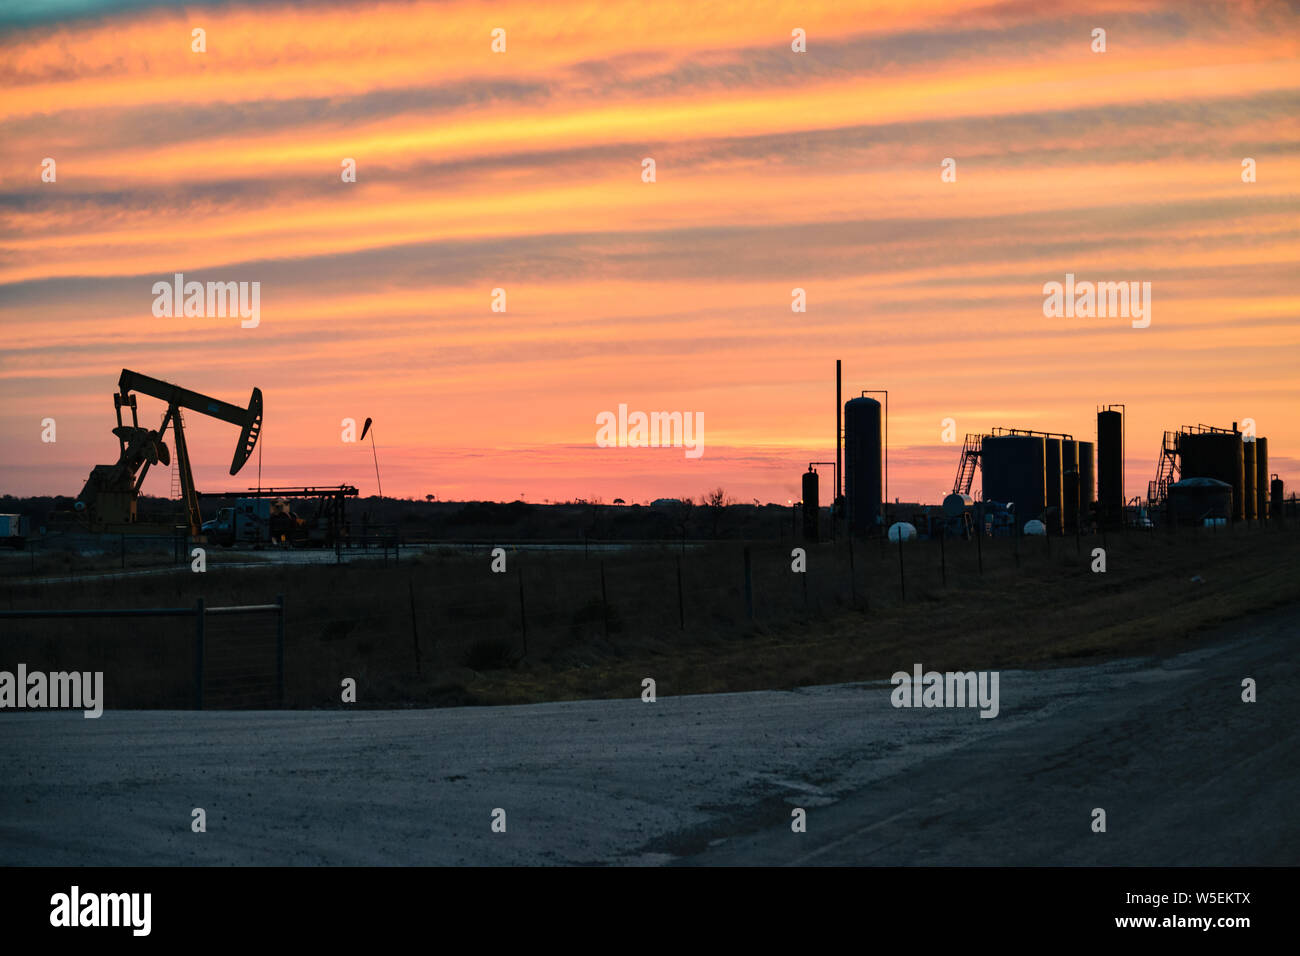 American Oil Well Stock Photo